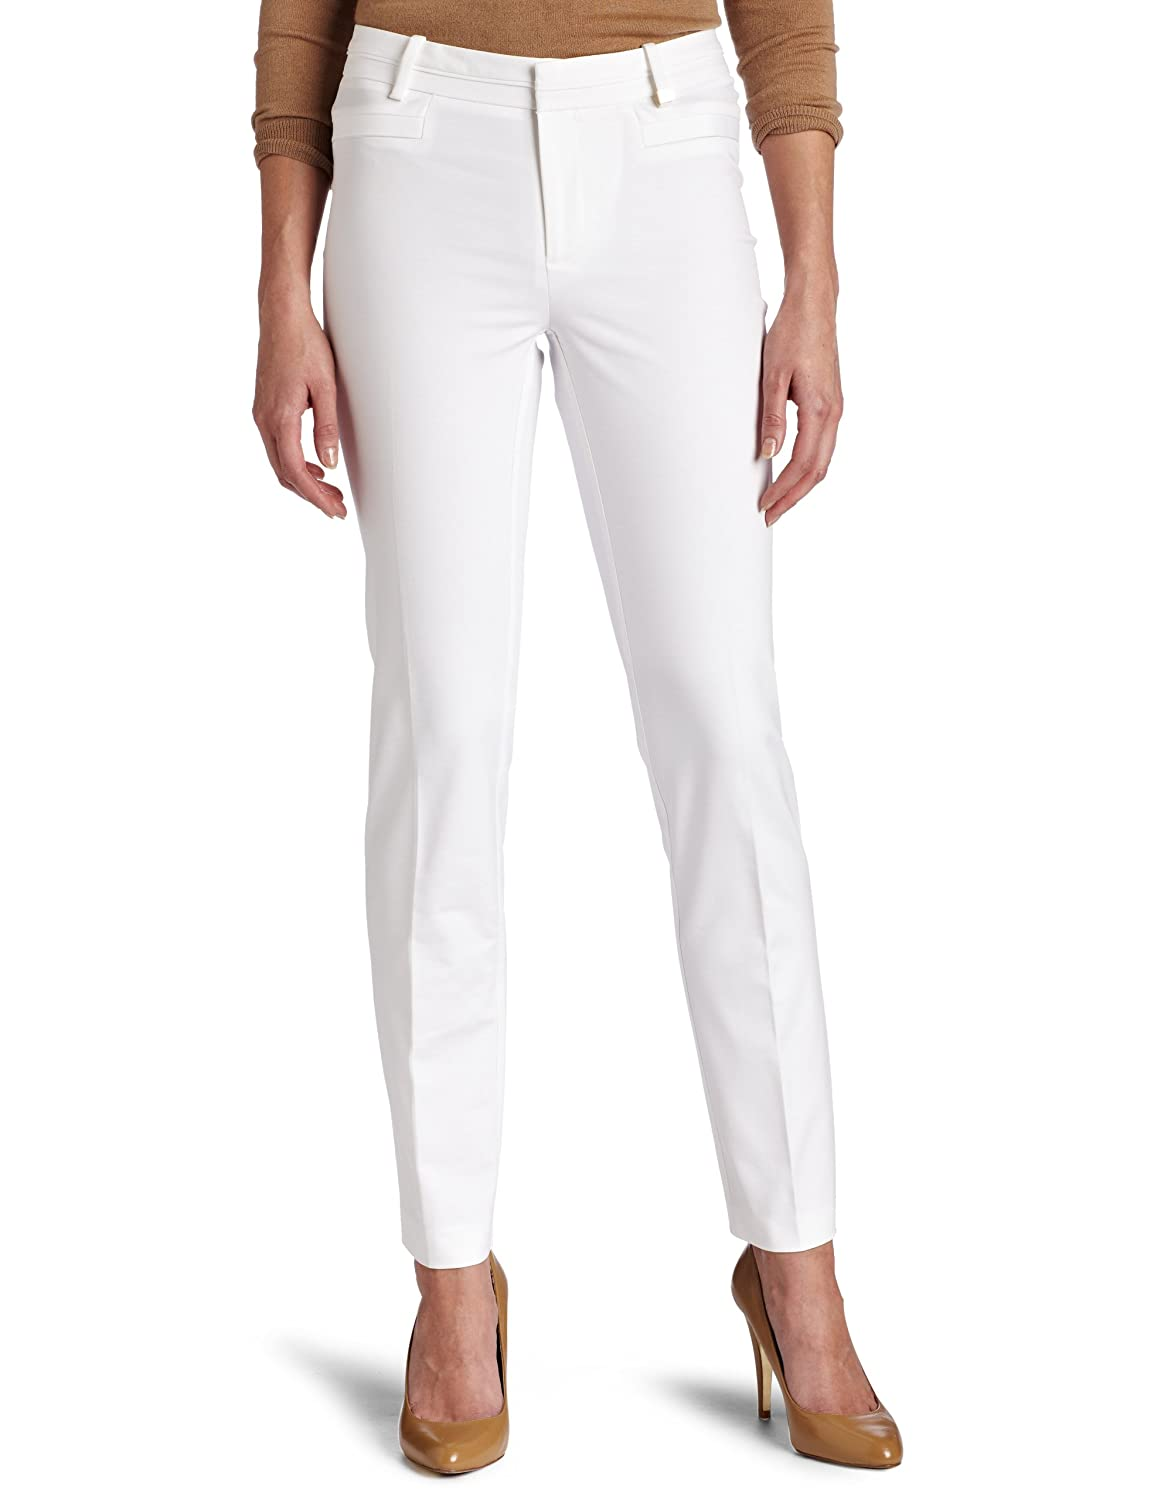 white pants womens